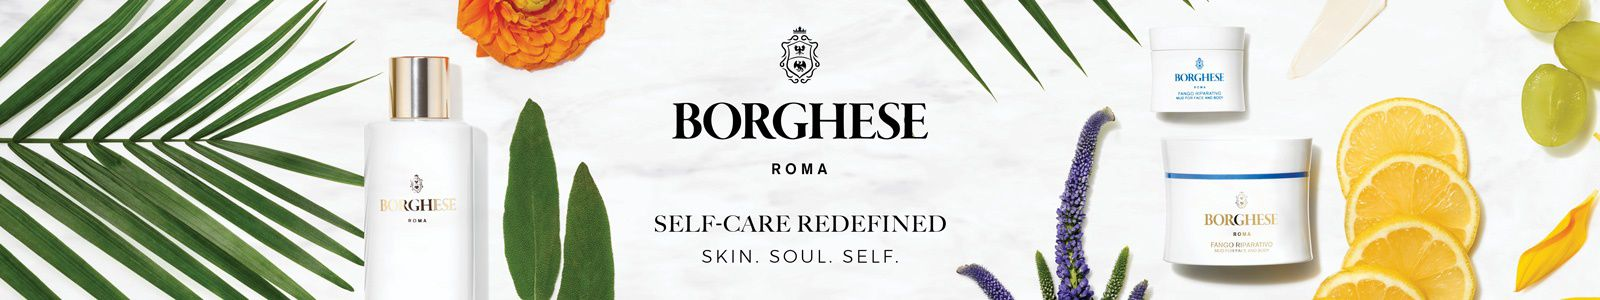 Borghese, Roma, Self-Care Redefined